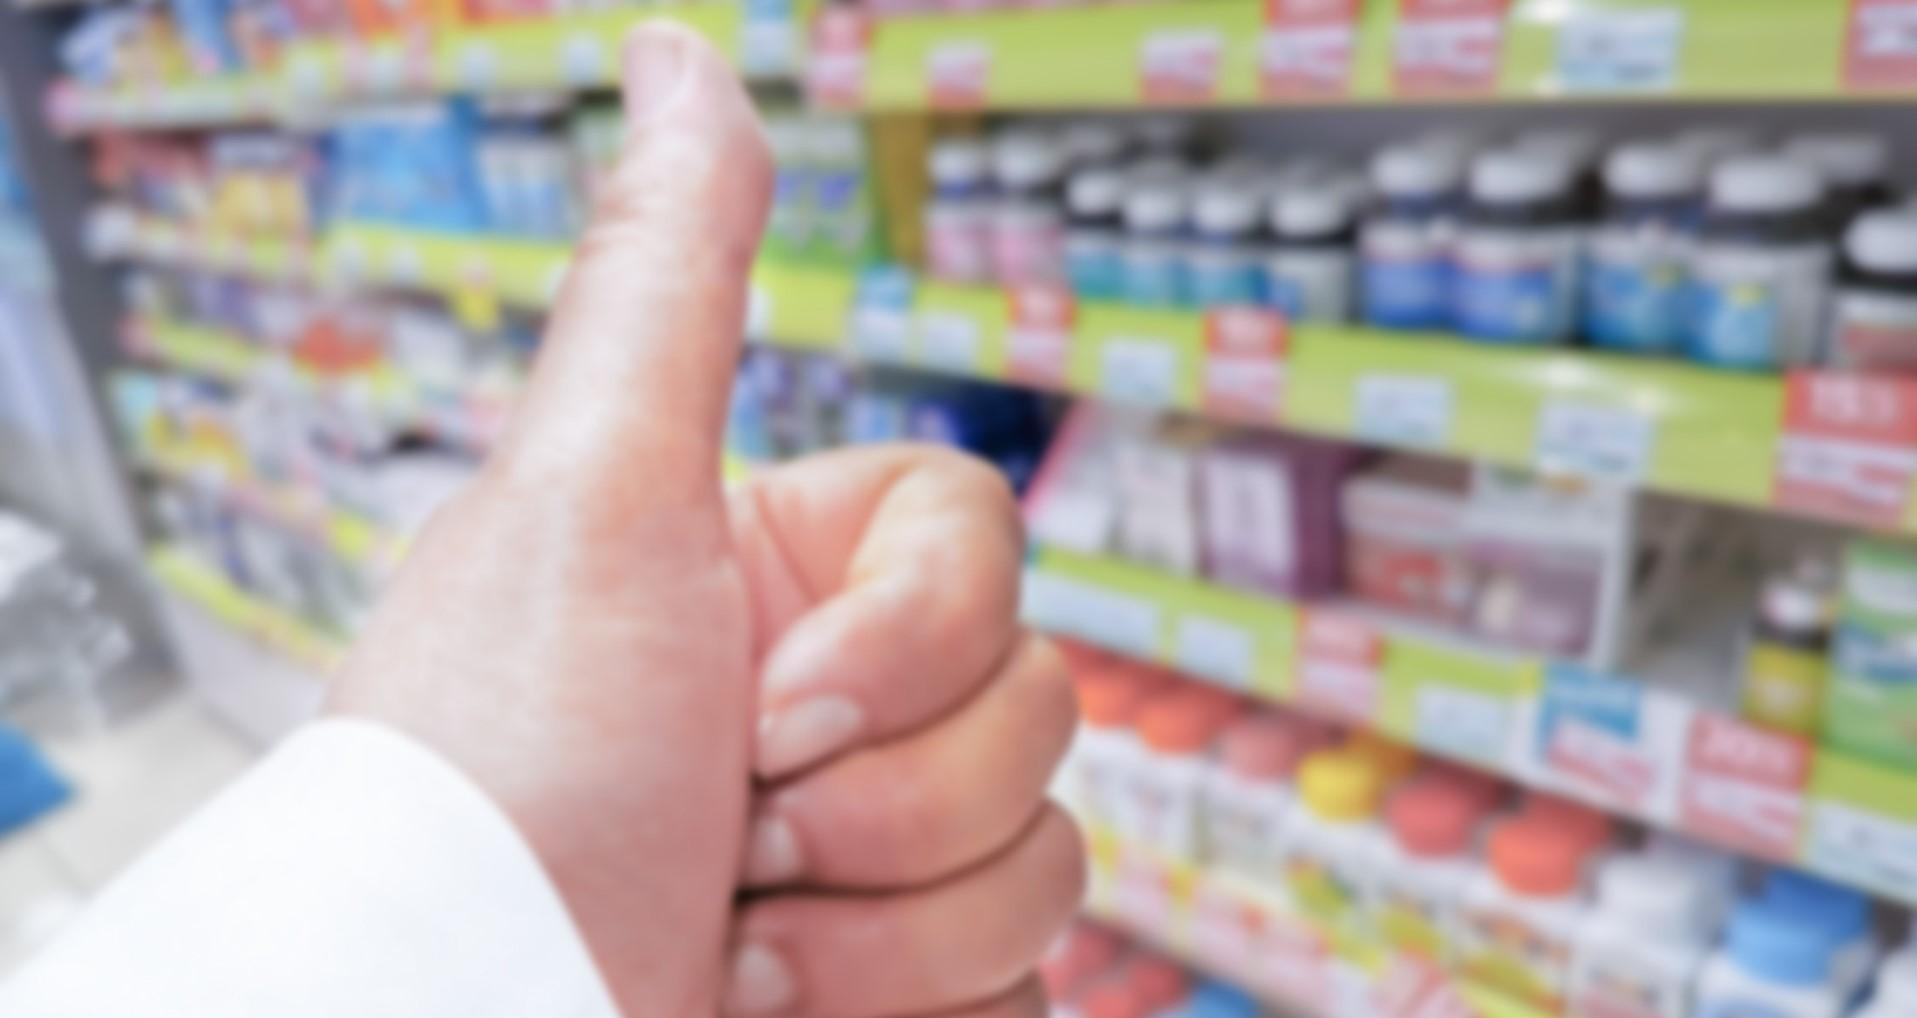 The New Plain Language Labeling (PLL) Regulations by Health Canada